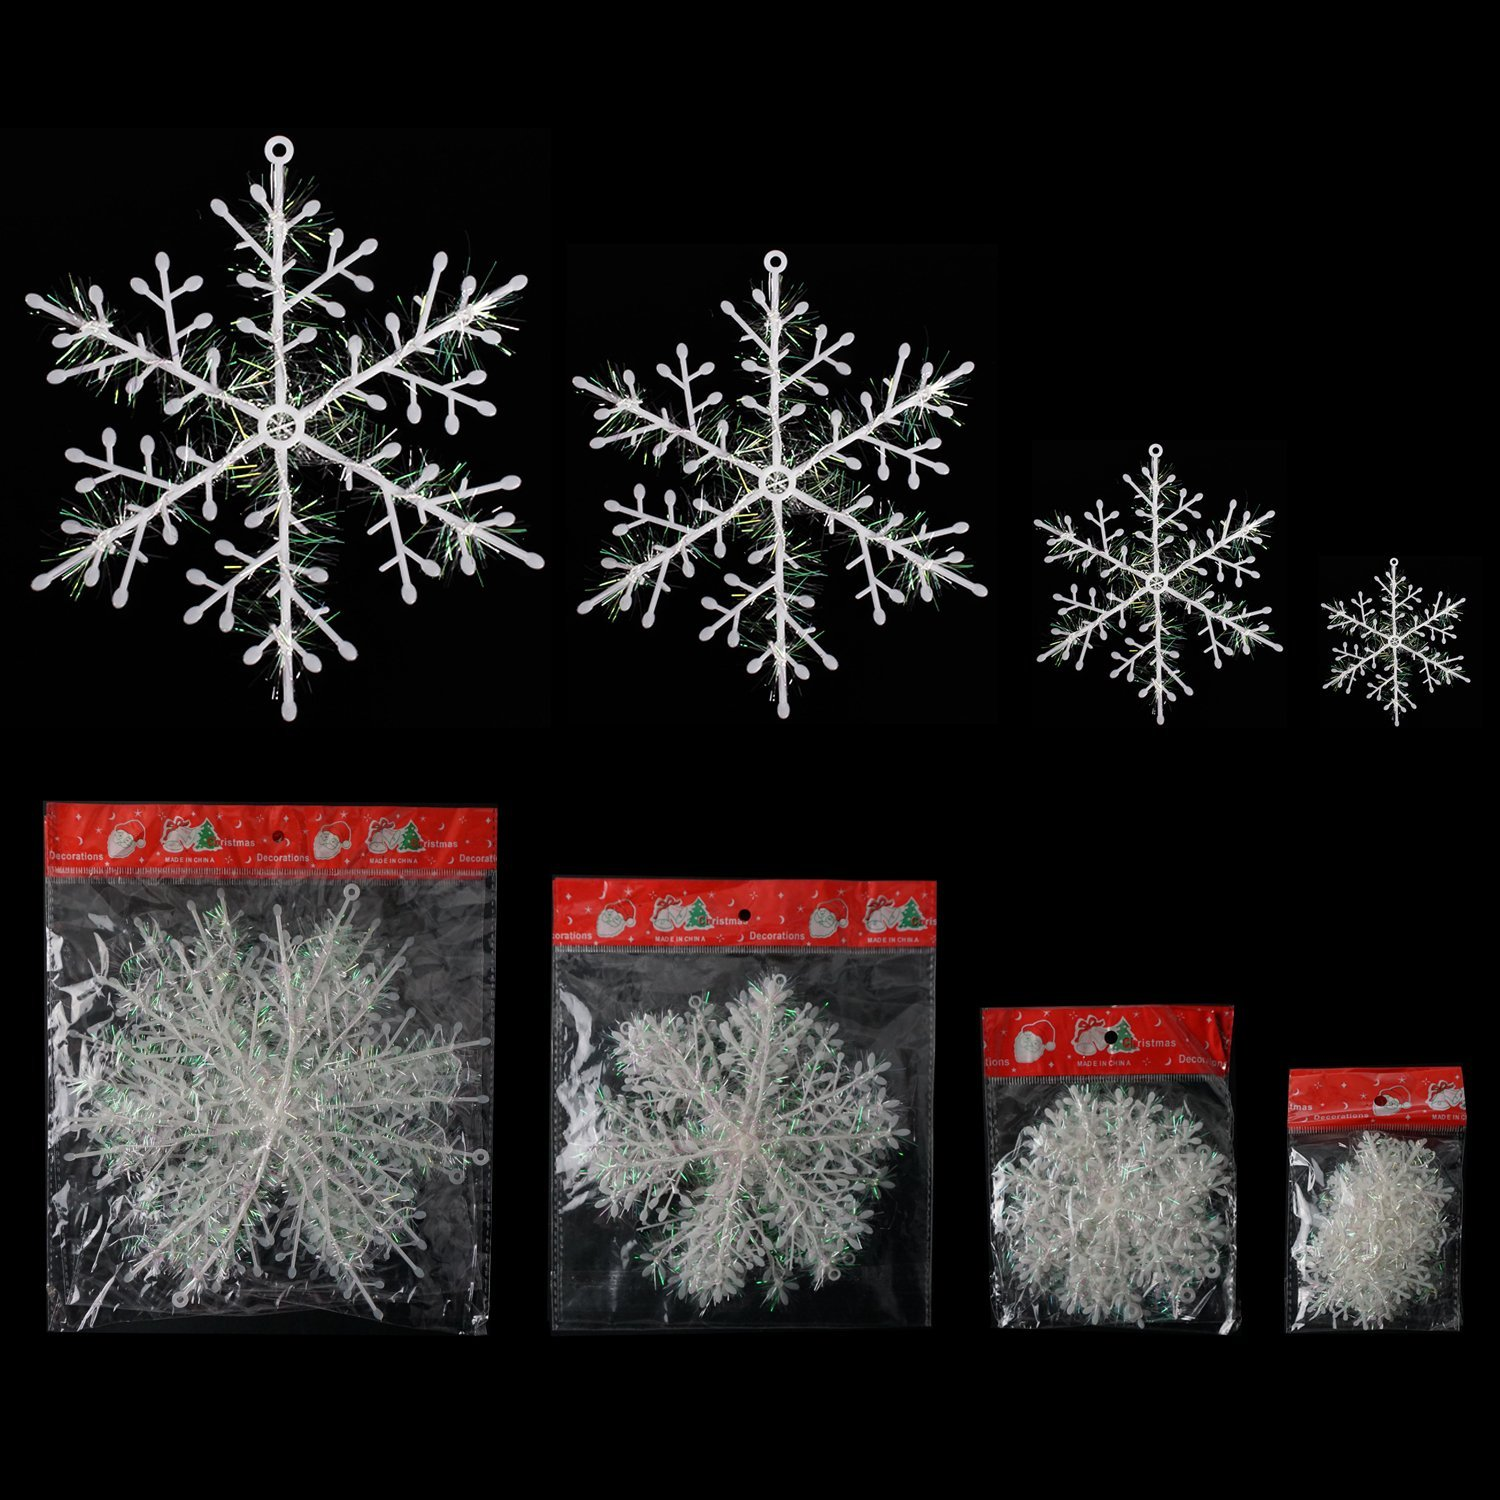 decor watch youtube how homemade decorations for snowflakes snowflake tutorial to make paper diy